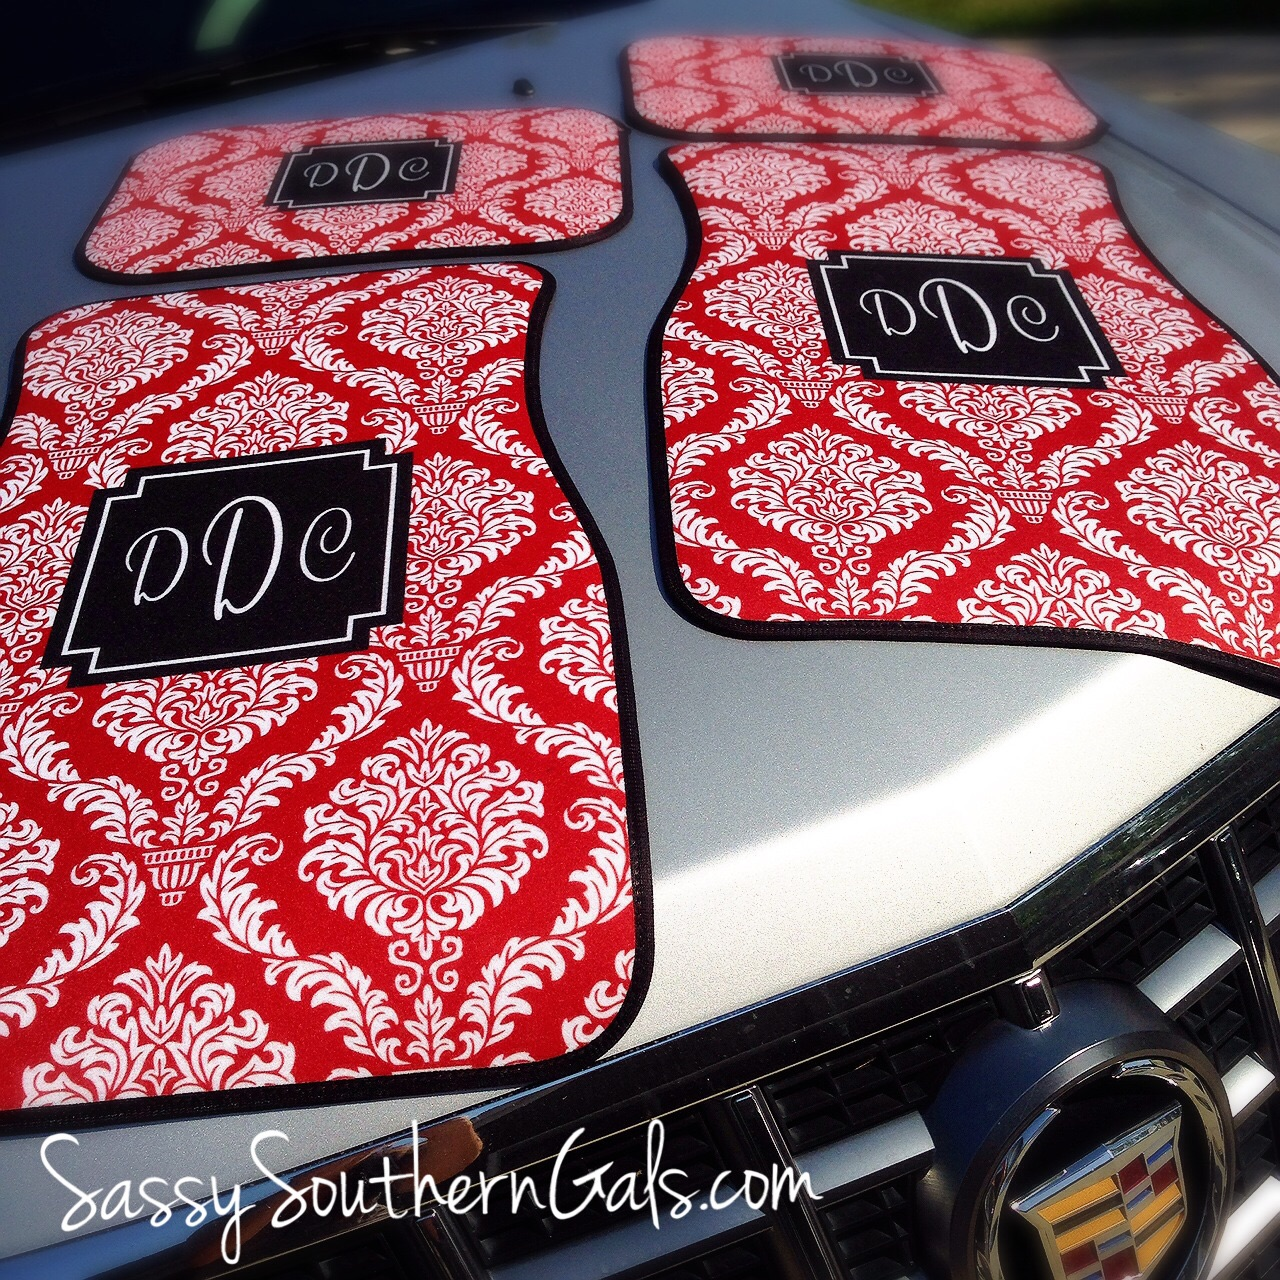 Monogrammed Car Mats / Personalized Car Mats, Complete Set